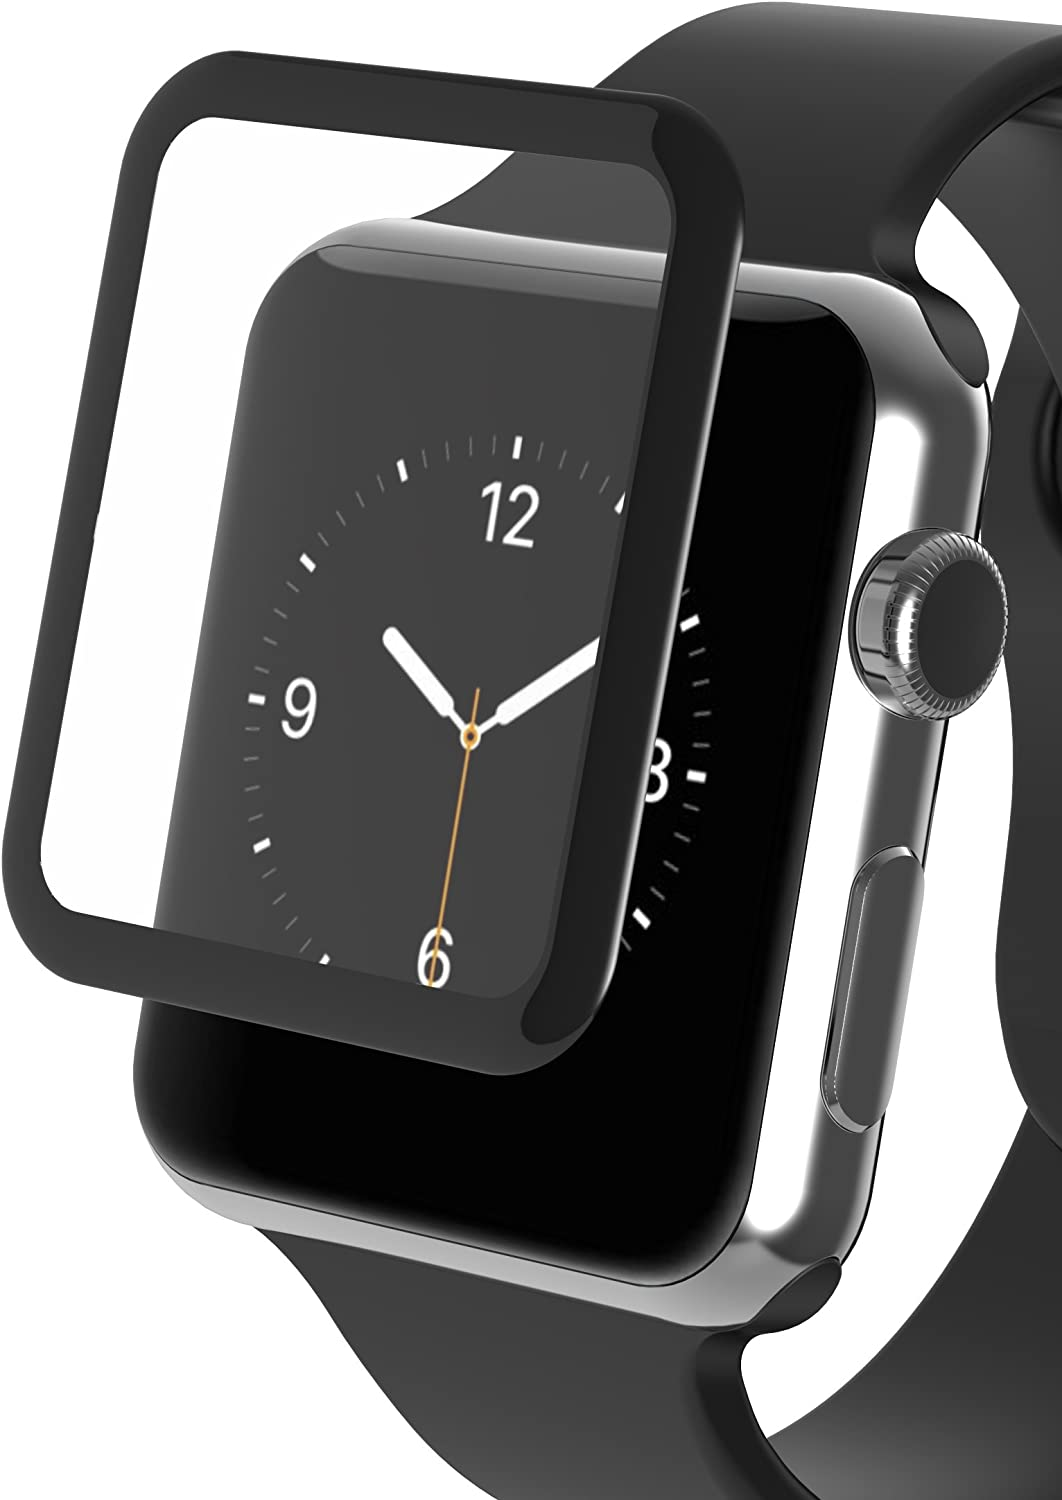 ZAGG InvisibleShield Luxe Screen Protector for Apple Watch Series 1 (38mm) - Black